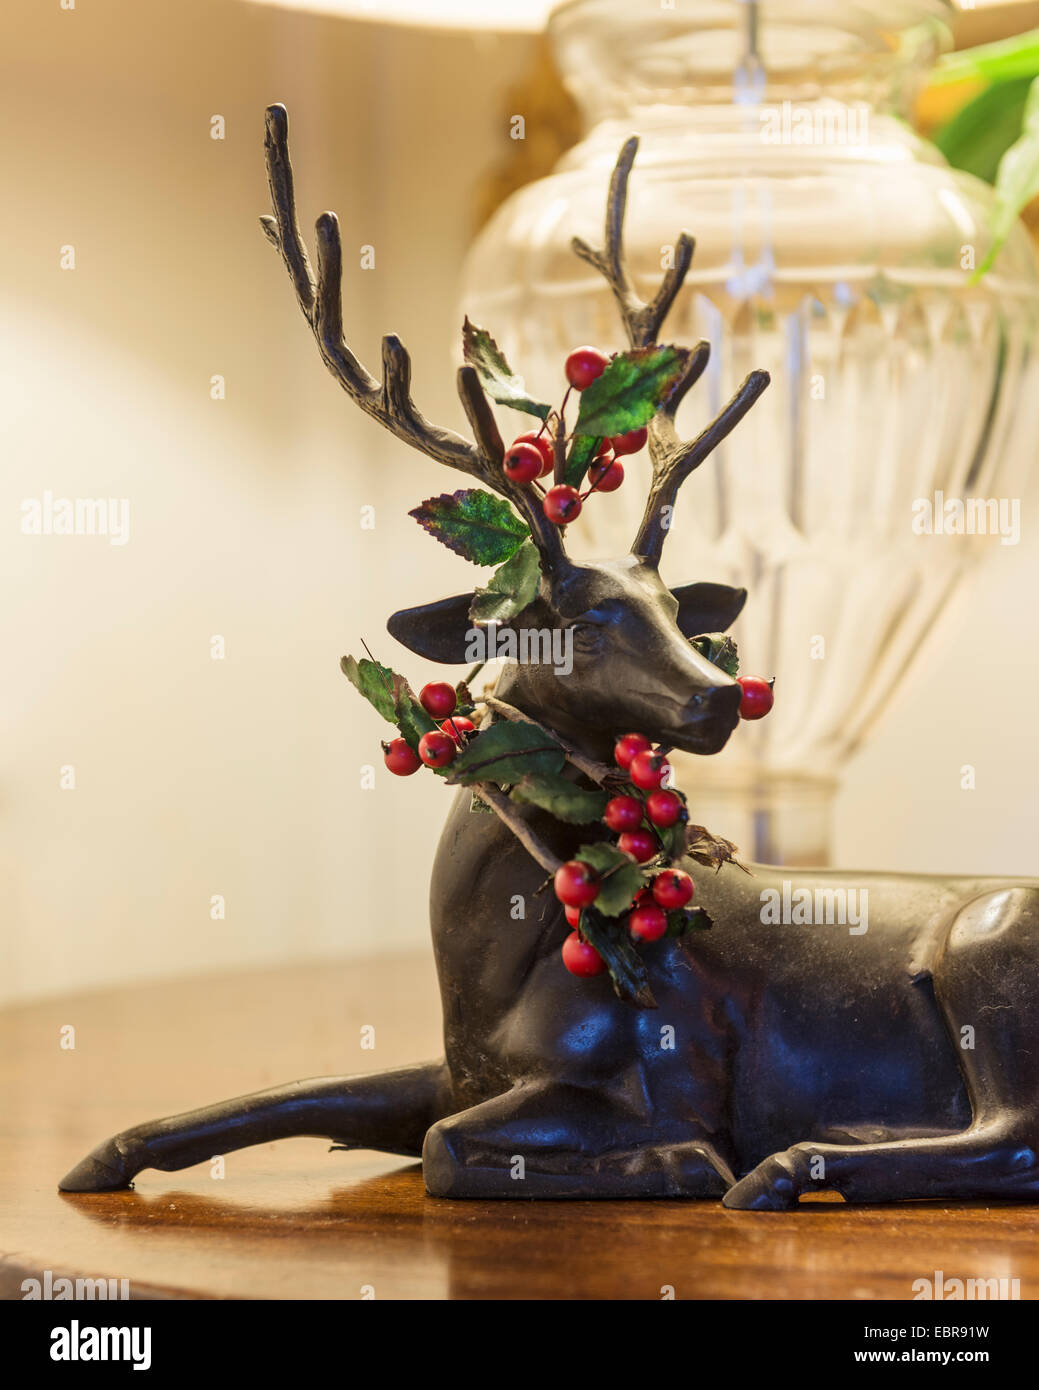 Sprigs of holly adorn a small sculpture of a stag - Stock Image